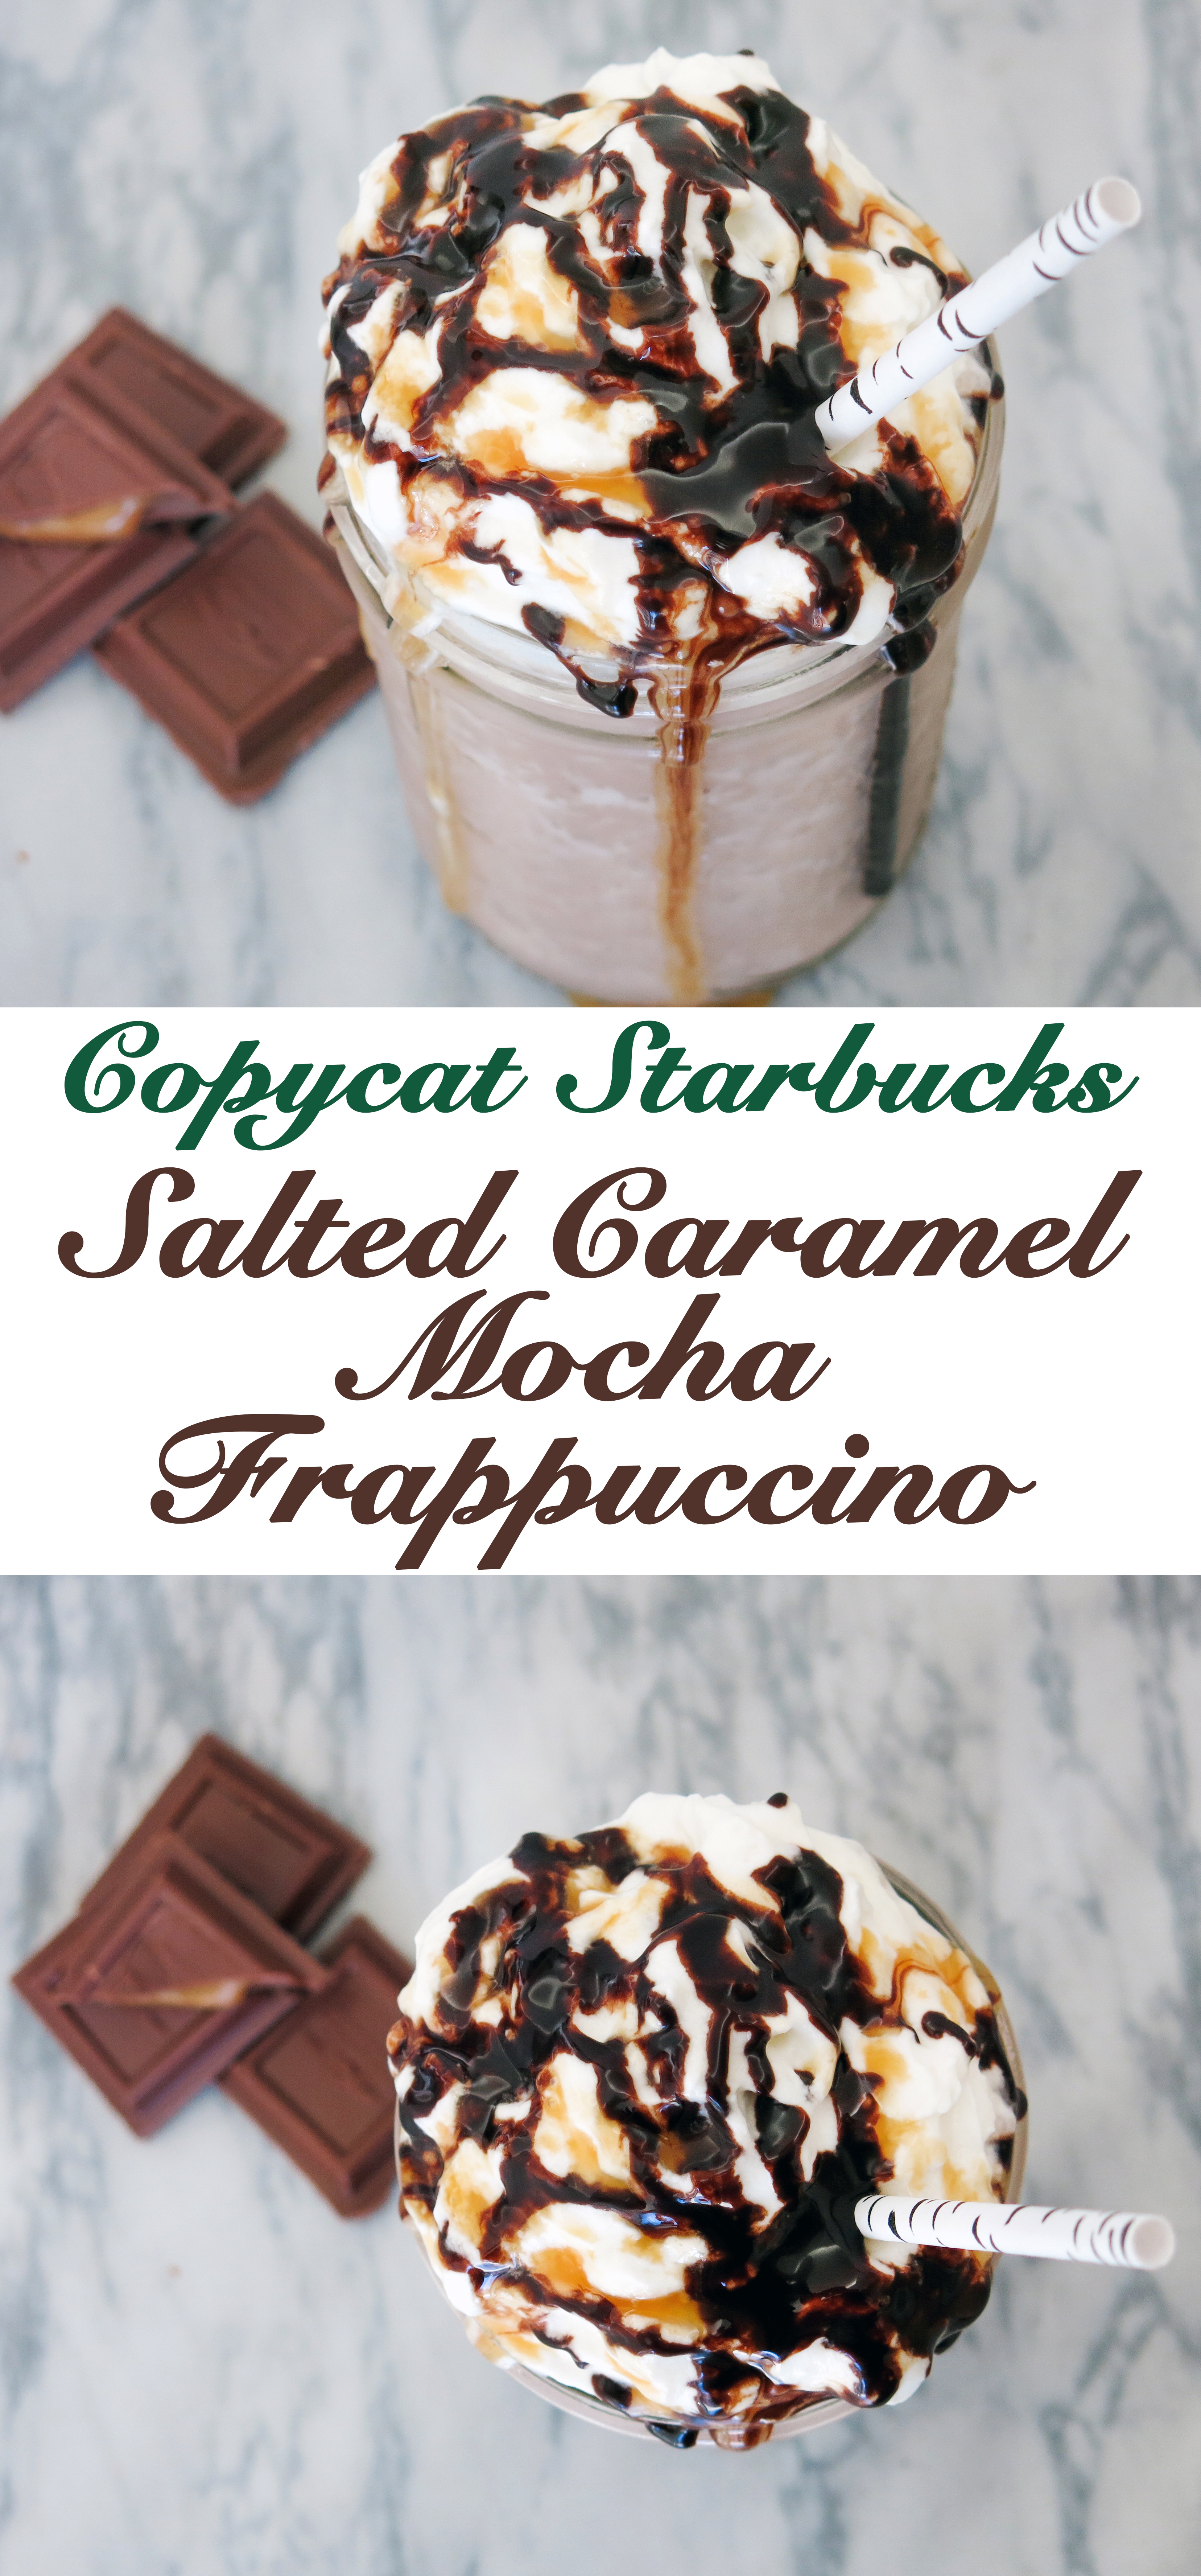 Salted Caramel Mocha Frappuccino Recipe 3 Steps With Pictures